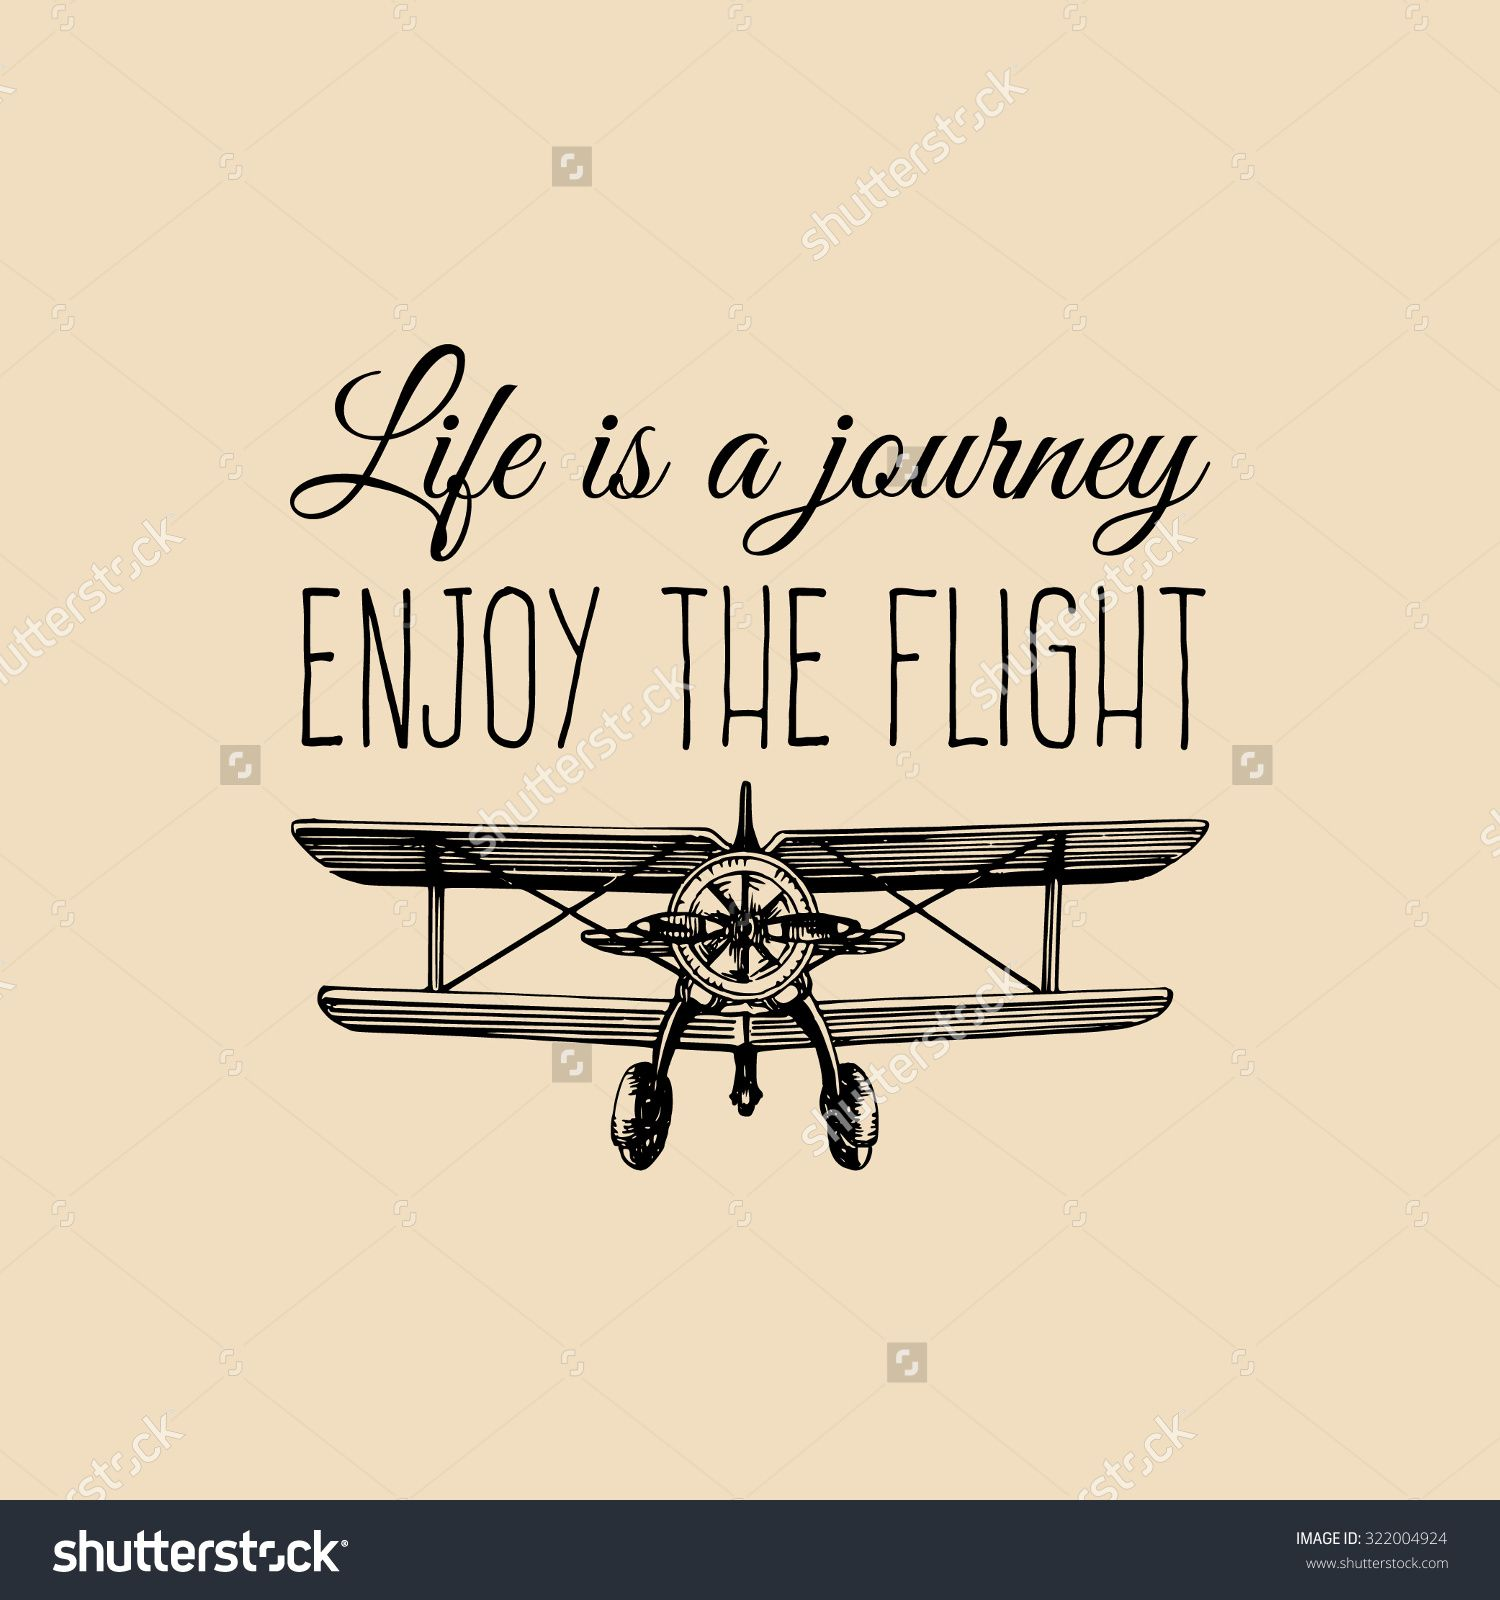 Airplane Quotes Adorable Life Is A Journey Enjoy The Flight Motivational Quotevintage